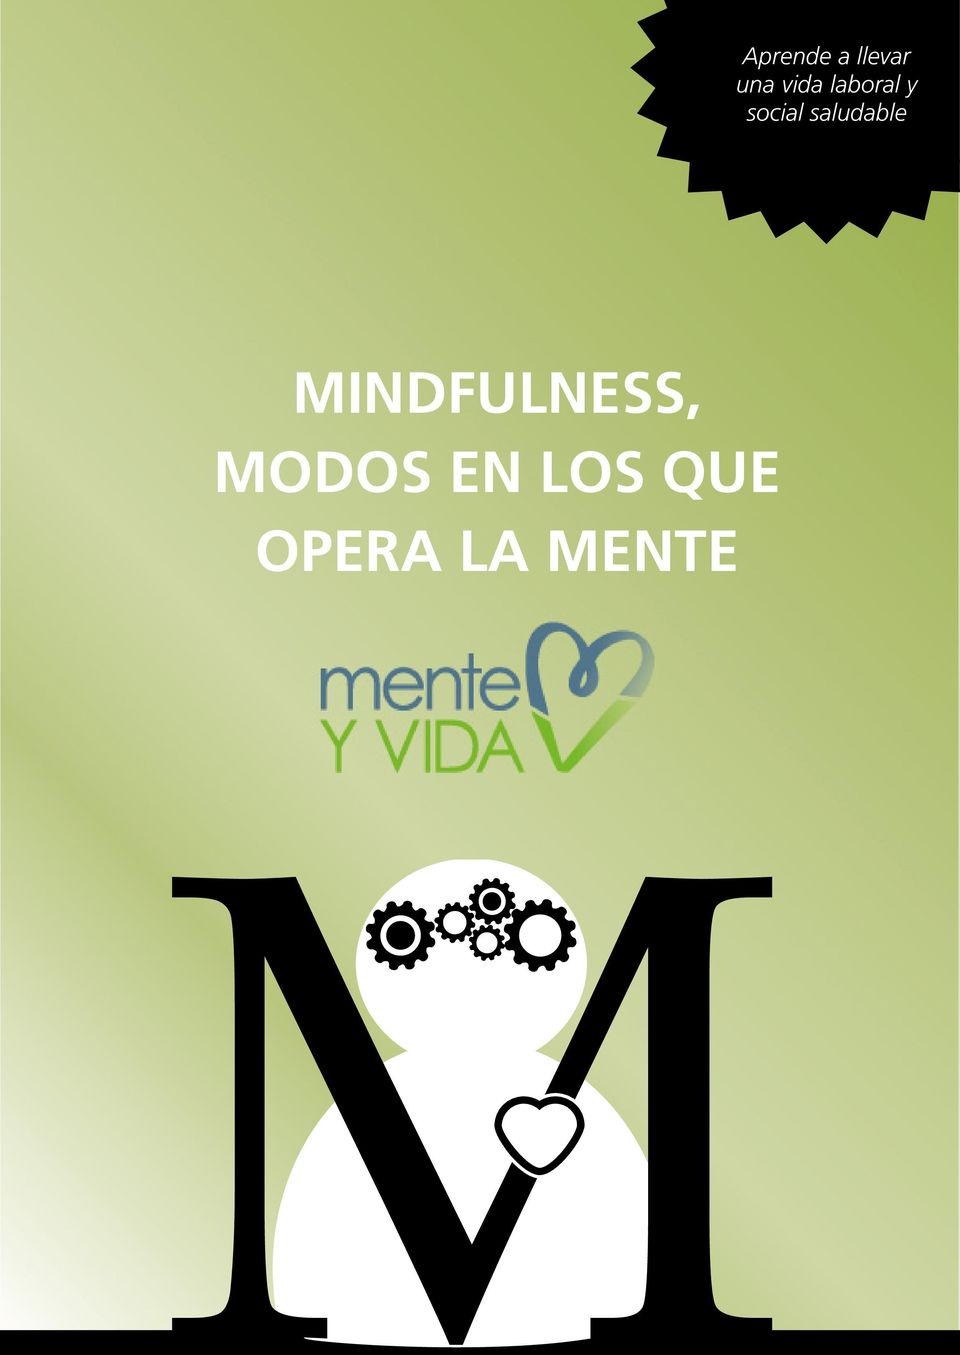 saludable MINDFULNESS,